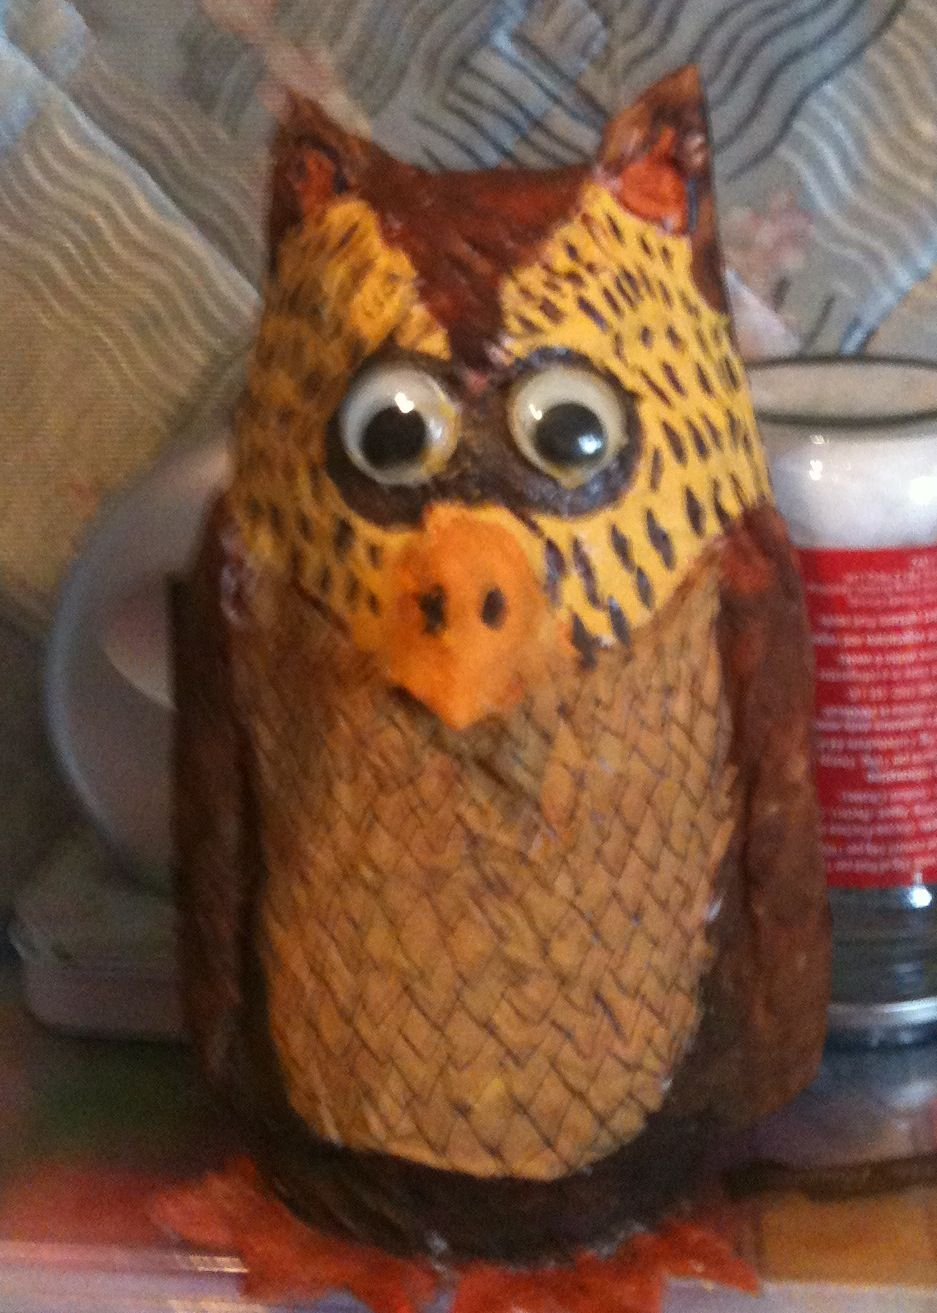 A paper machete owl I made using a jam jar as the main body to give him stability.